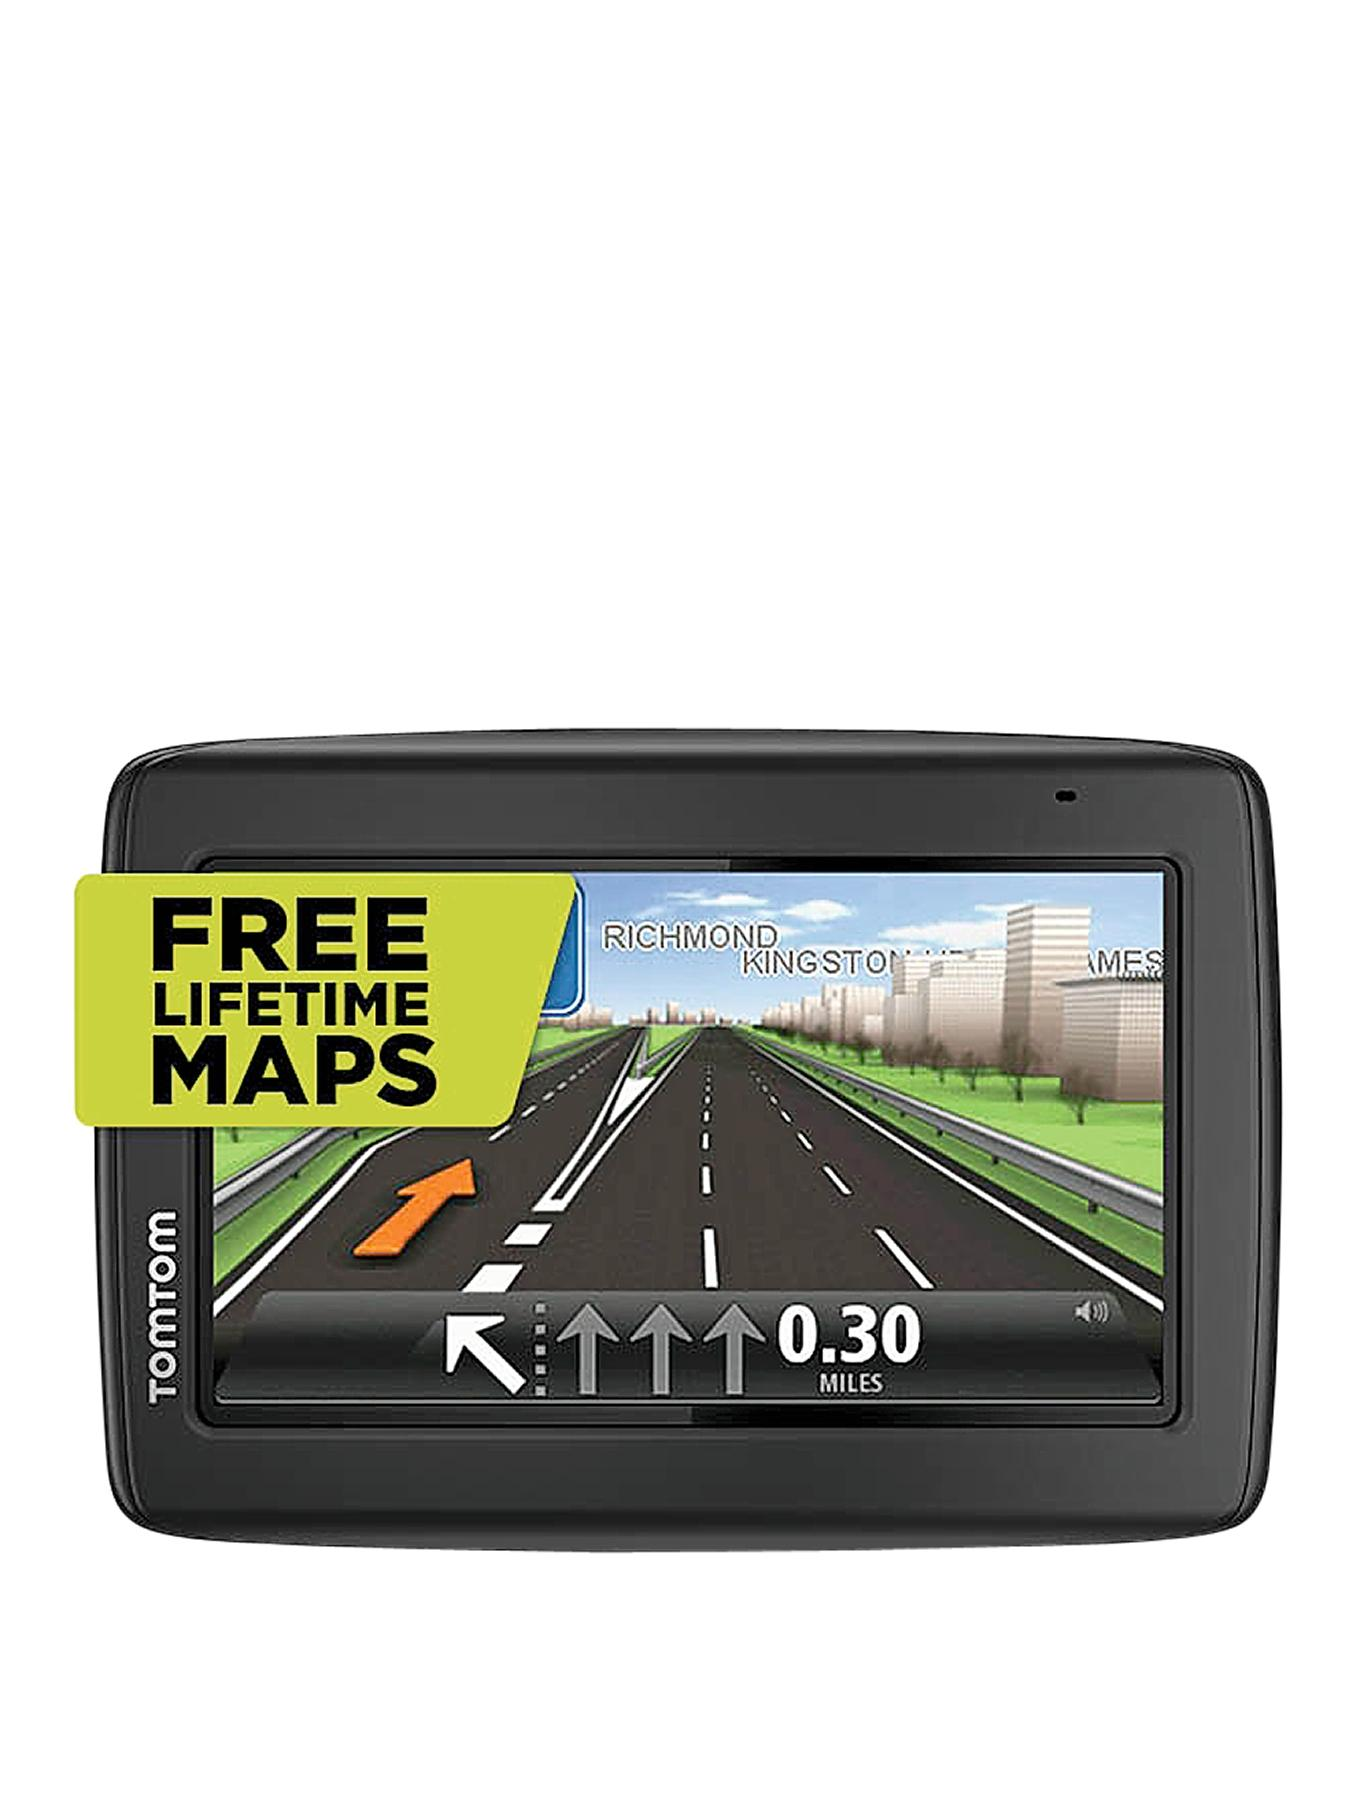 Start 25 WE 5 inch Satellite Navigation Unit with Lifetime Maps